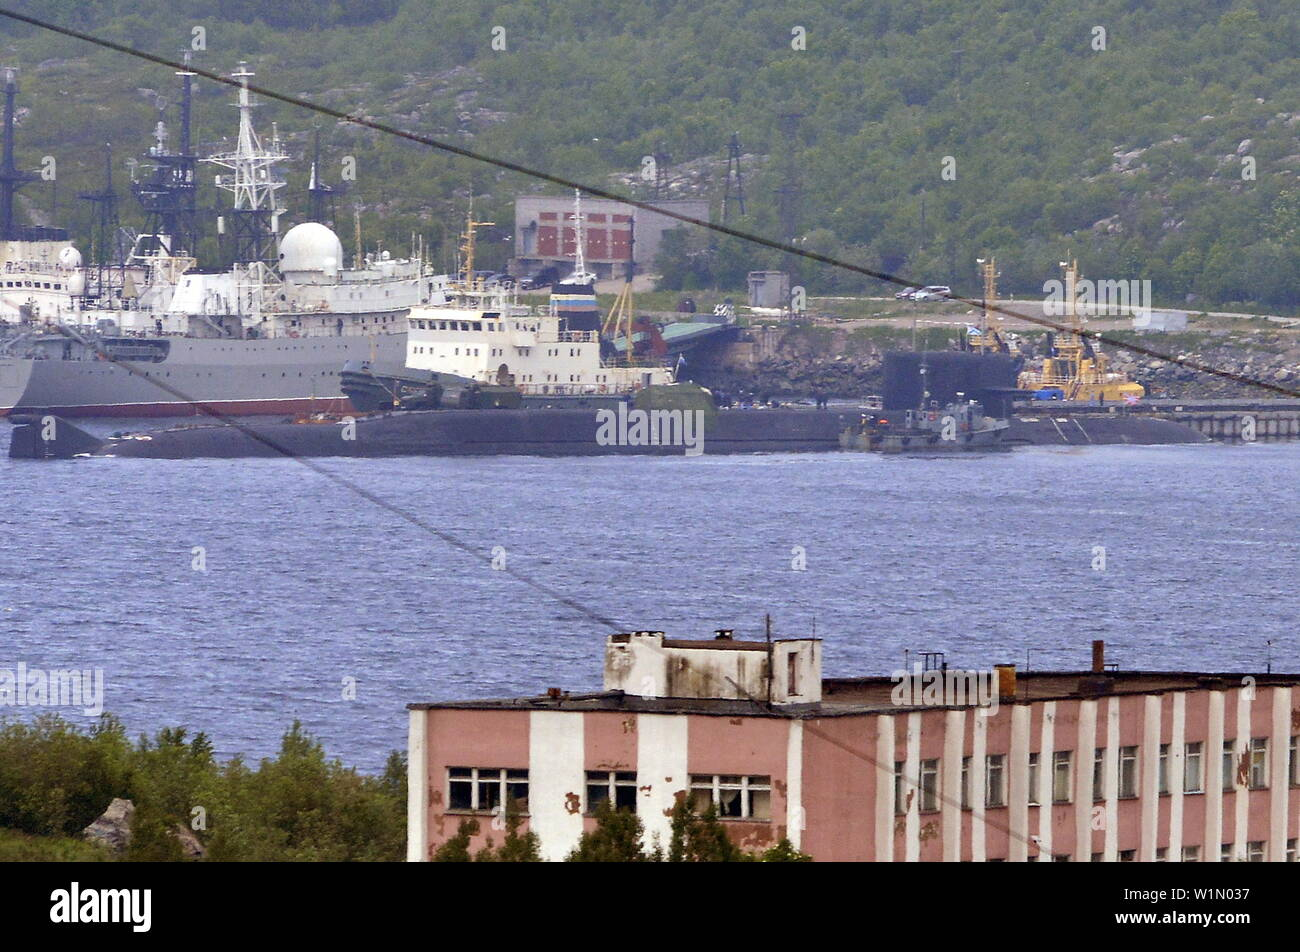 SEVEROMORSK, RUSSIA – JULY 3, 2019: A rescue tugboat (back) and the BS-136 Orenburg ballistic missile submarine (front) carrying a nuclear deepwater station of Project 10831 at the Russian Northern Fleet's base. Lev Fedoseyev/TASS - Stock Image